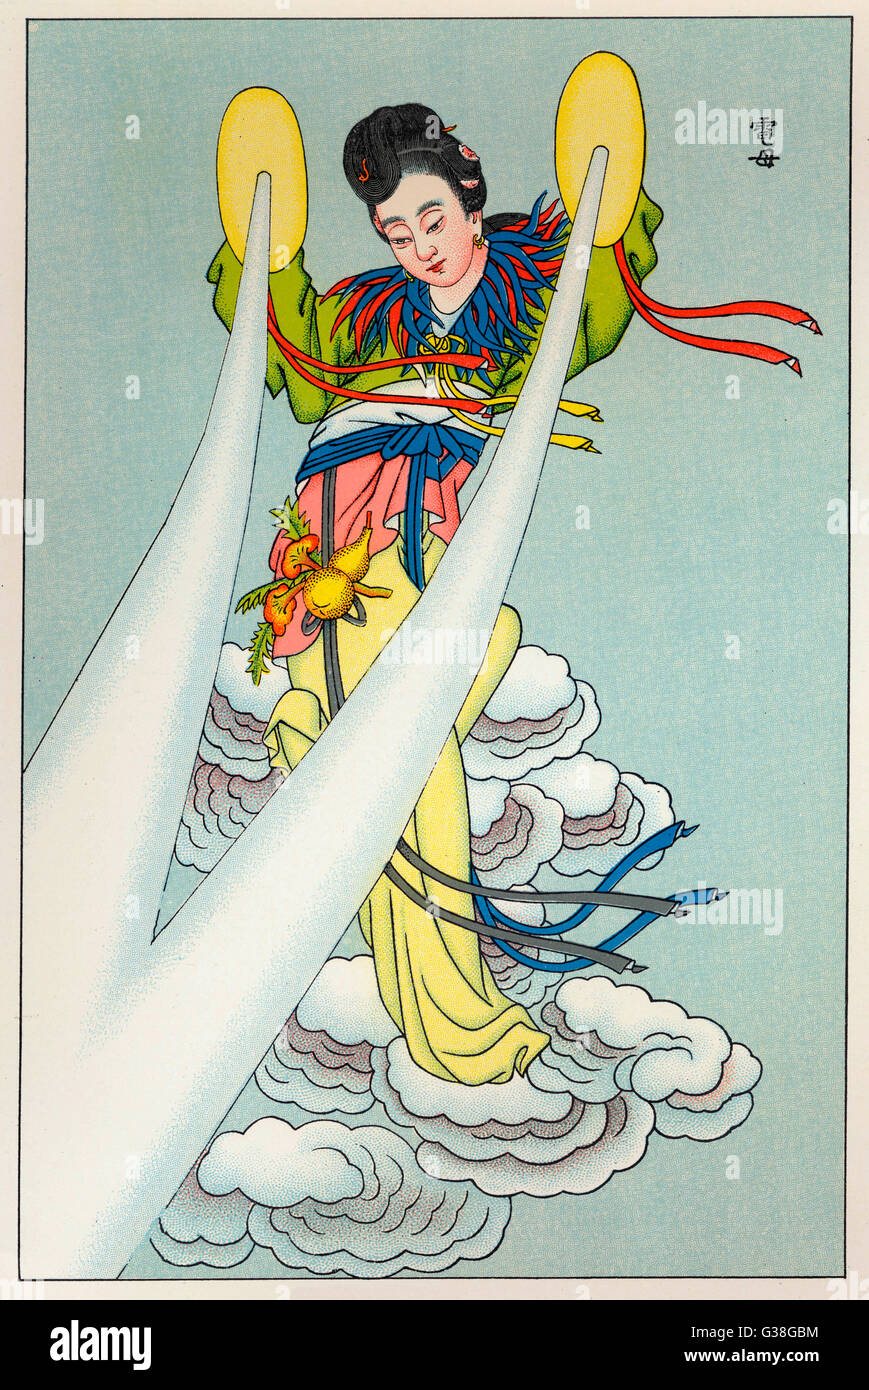 Chinese goddess TIEN-MOU 'the Mother of Lightning'         Date: 1915 - Stock Image